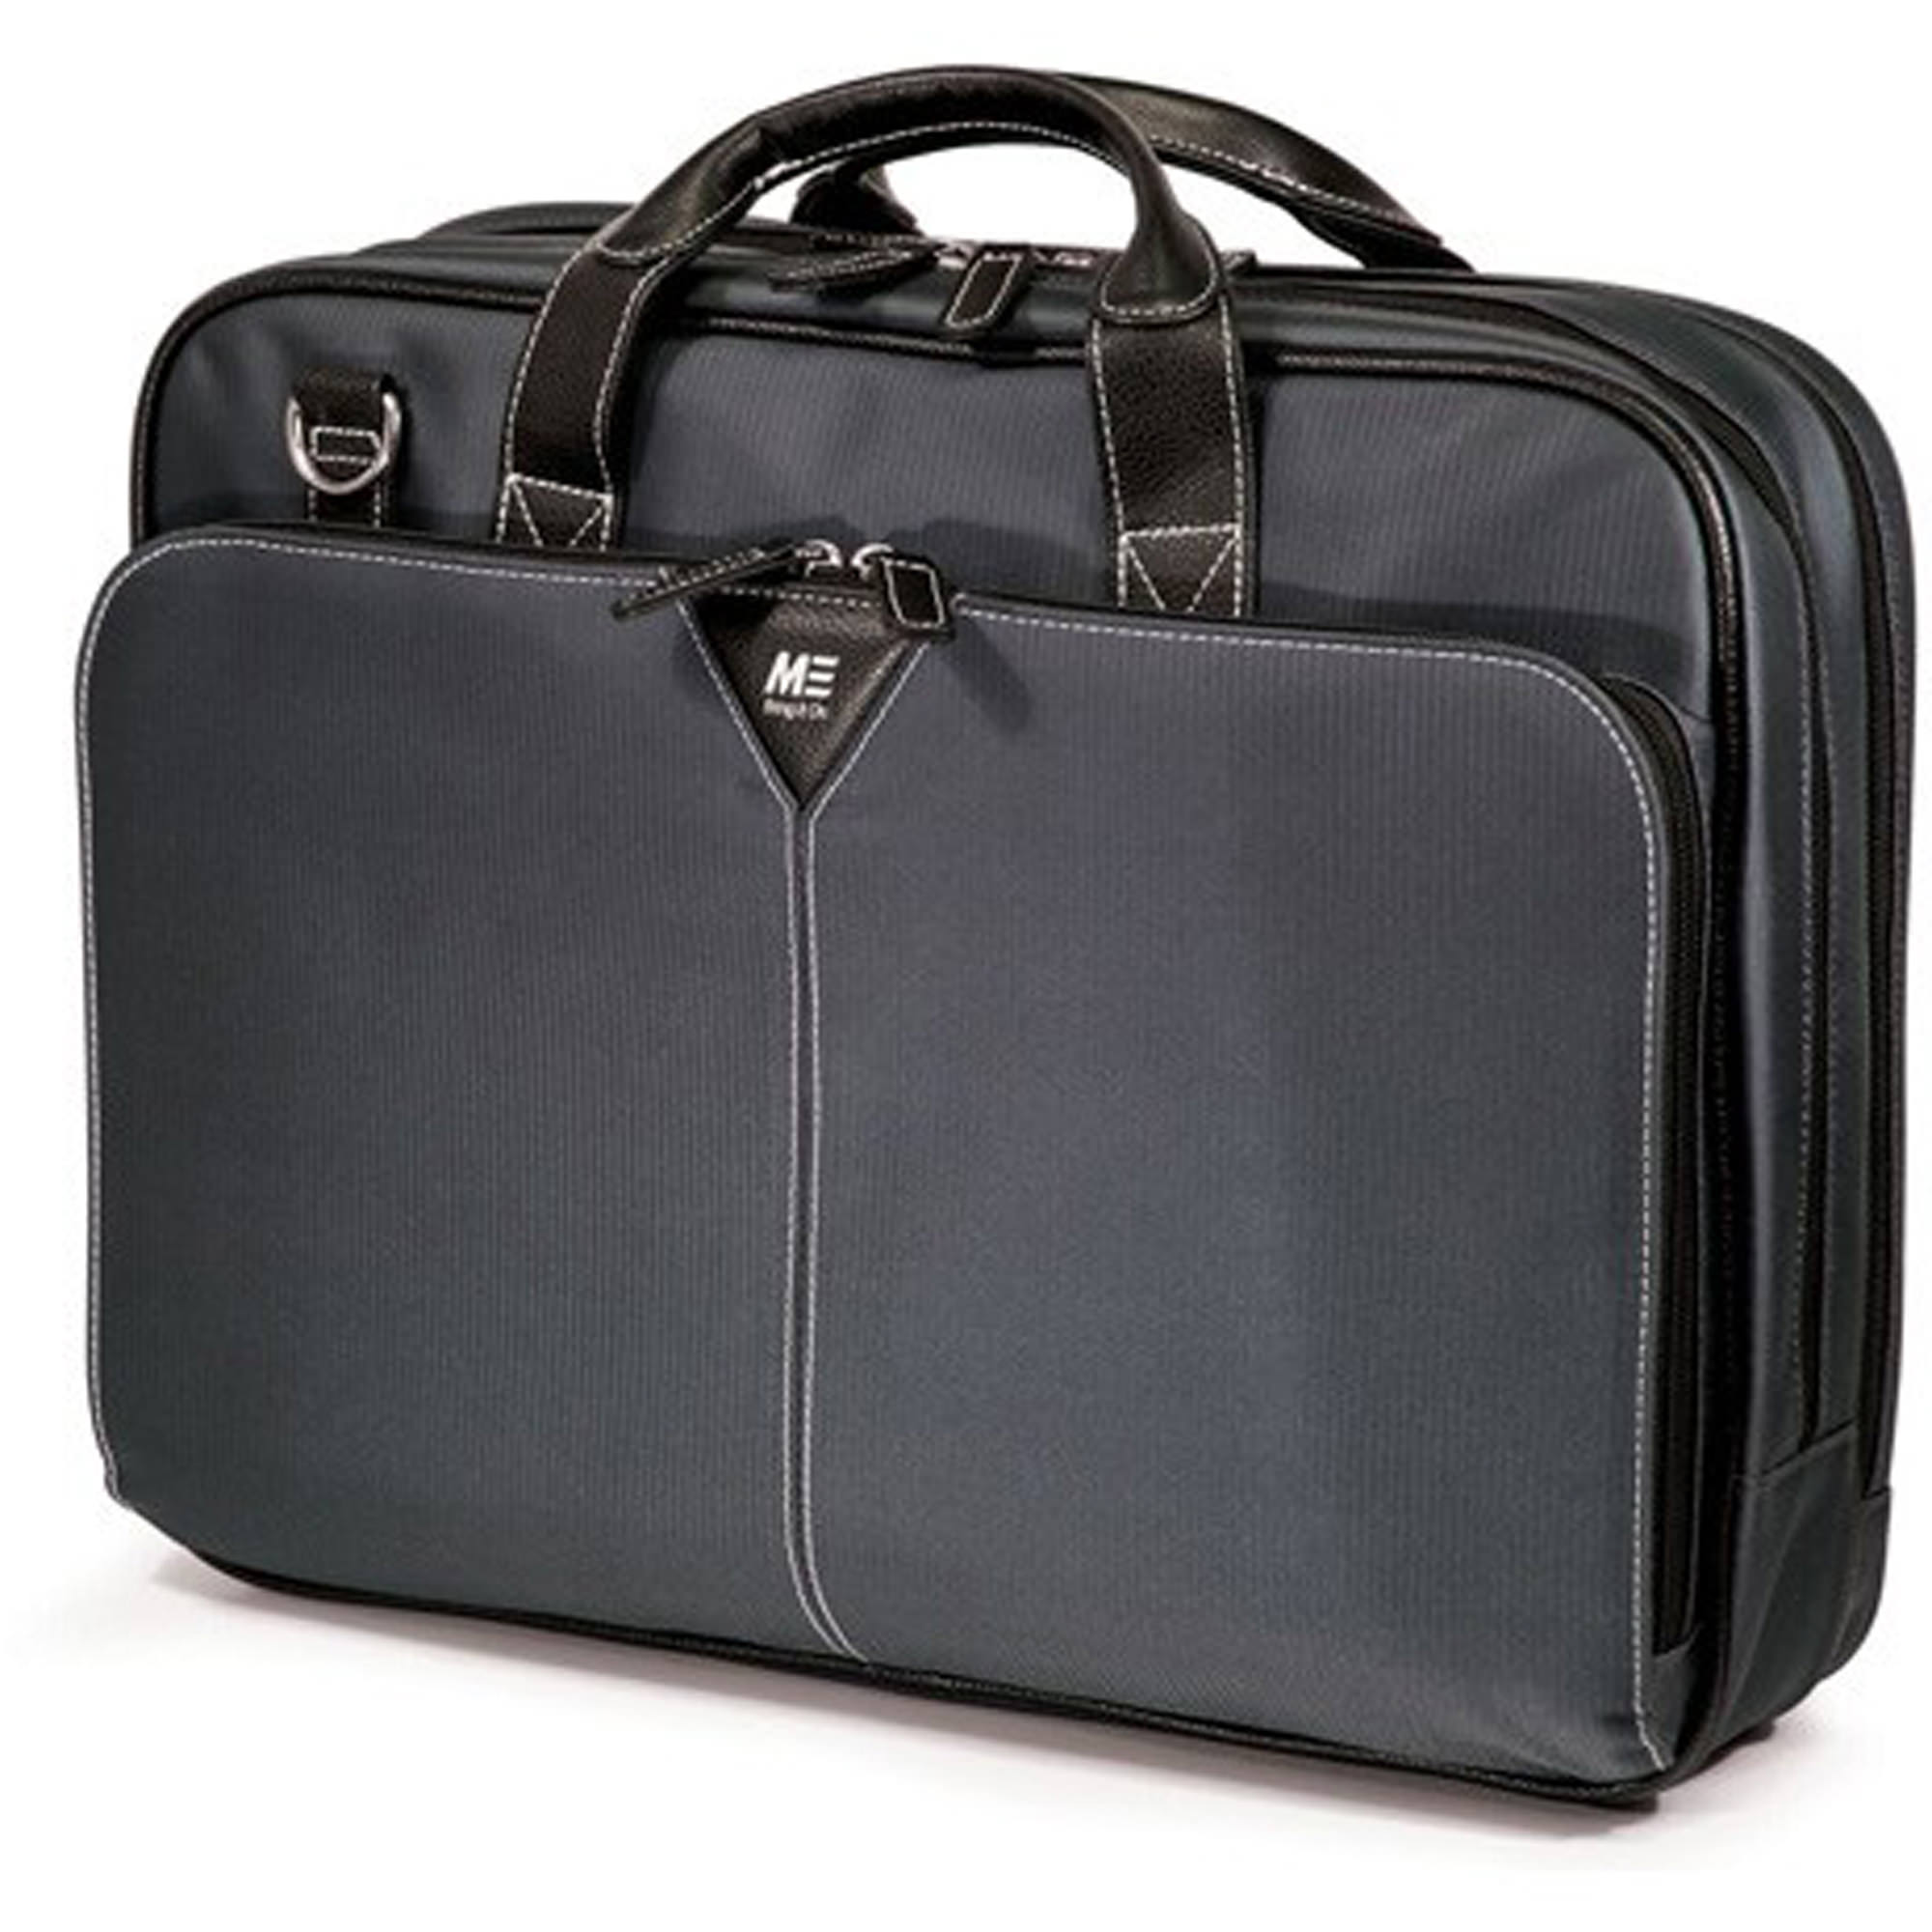 "Mobile Edge MEGBCP Graphite Premium Nylon Laptop 15.6"" Briefcase – Graphite"